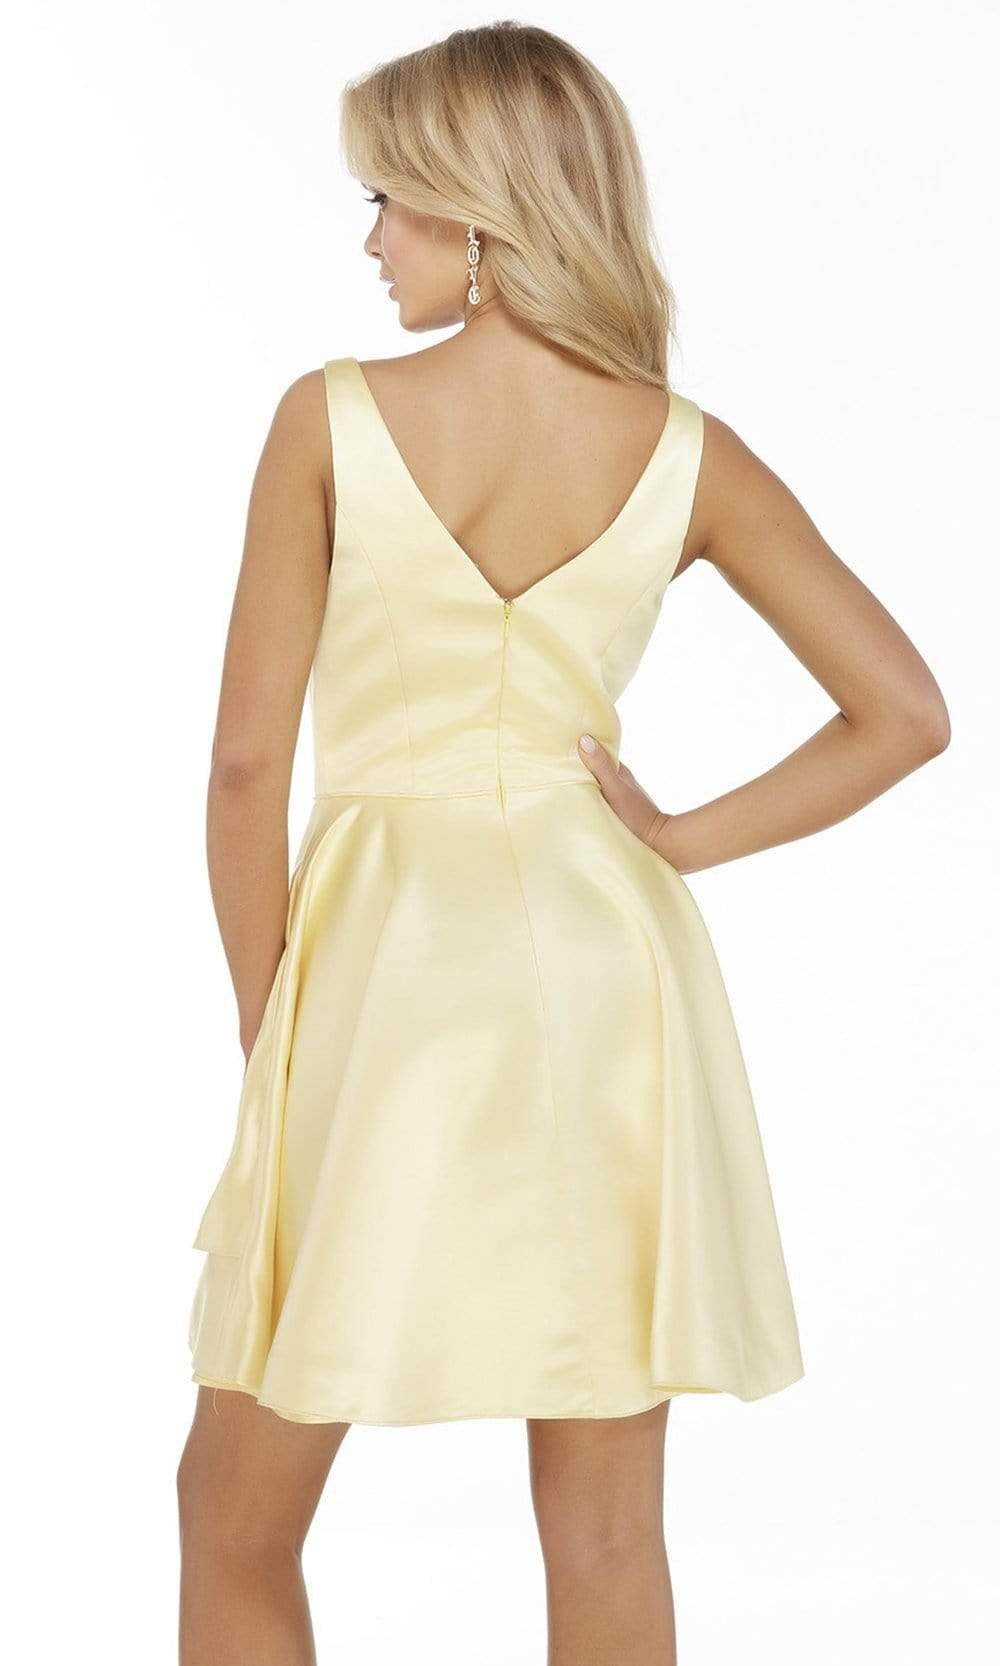 Alyce Paris - 3023 Luxe Silk Satin Sleeveless V Neck A-Line Dress Homecoming Dresses